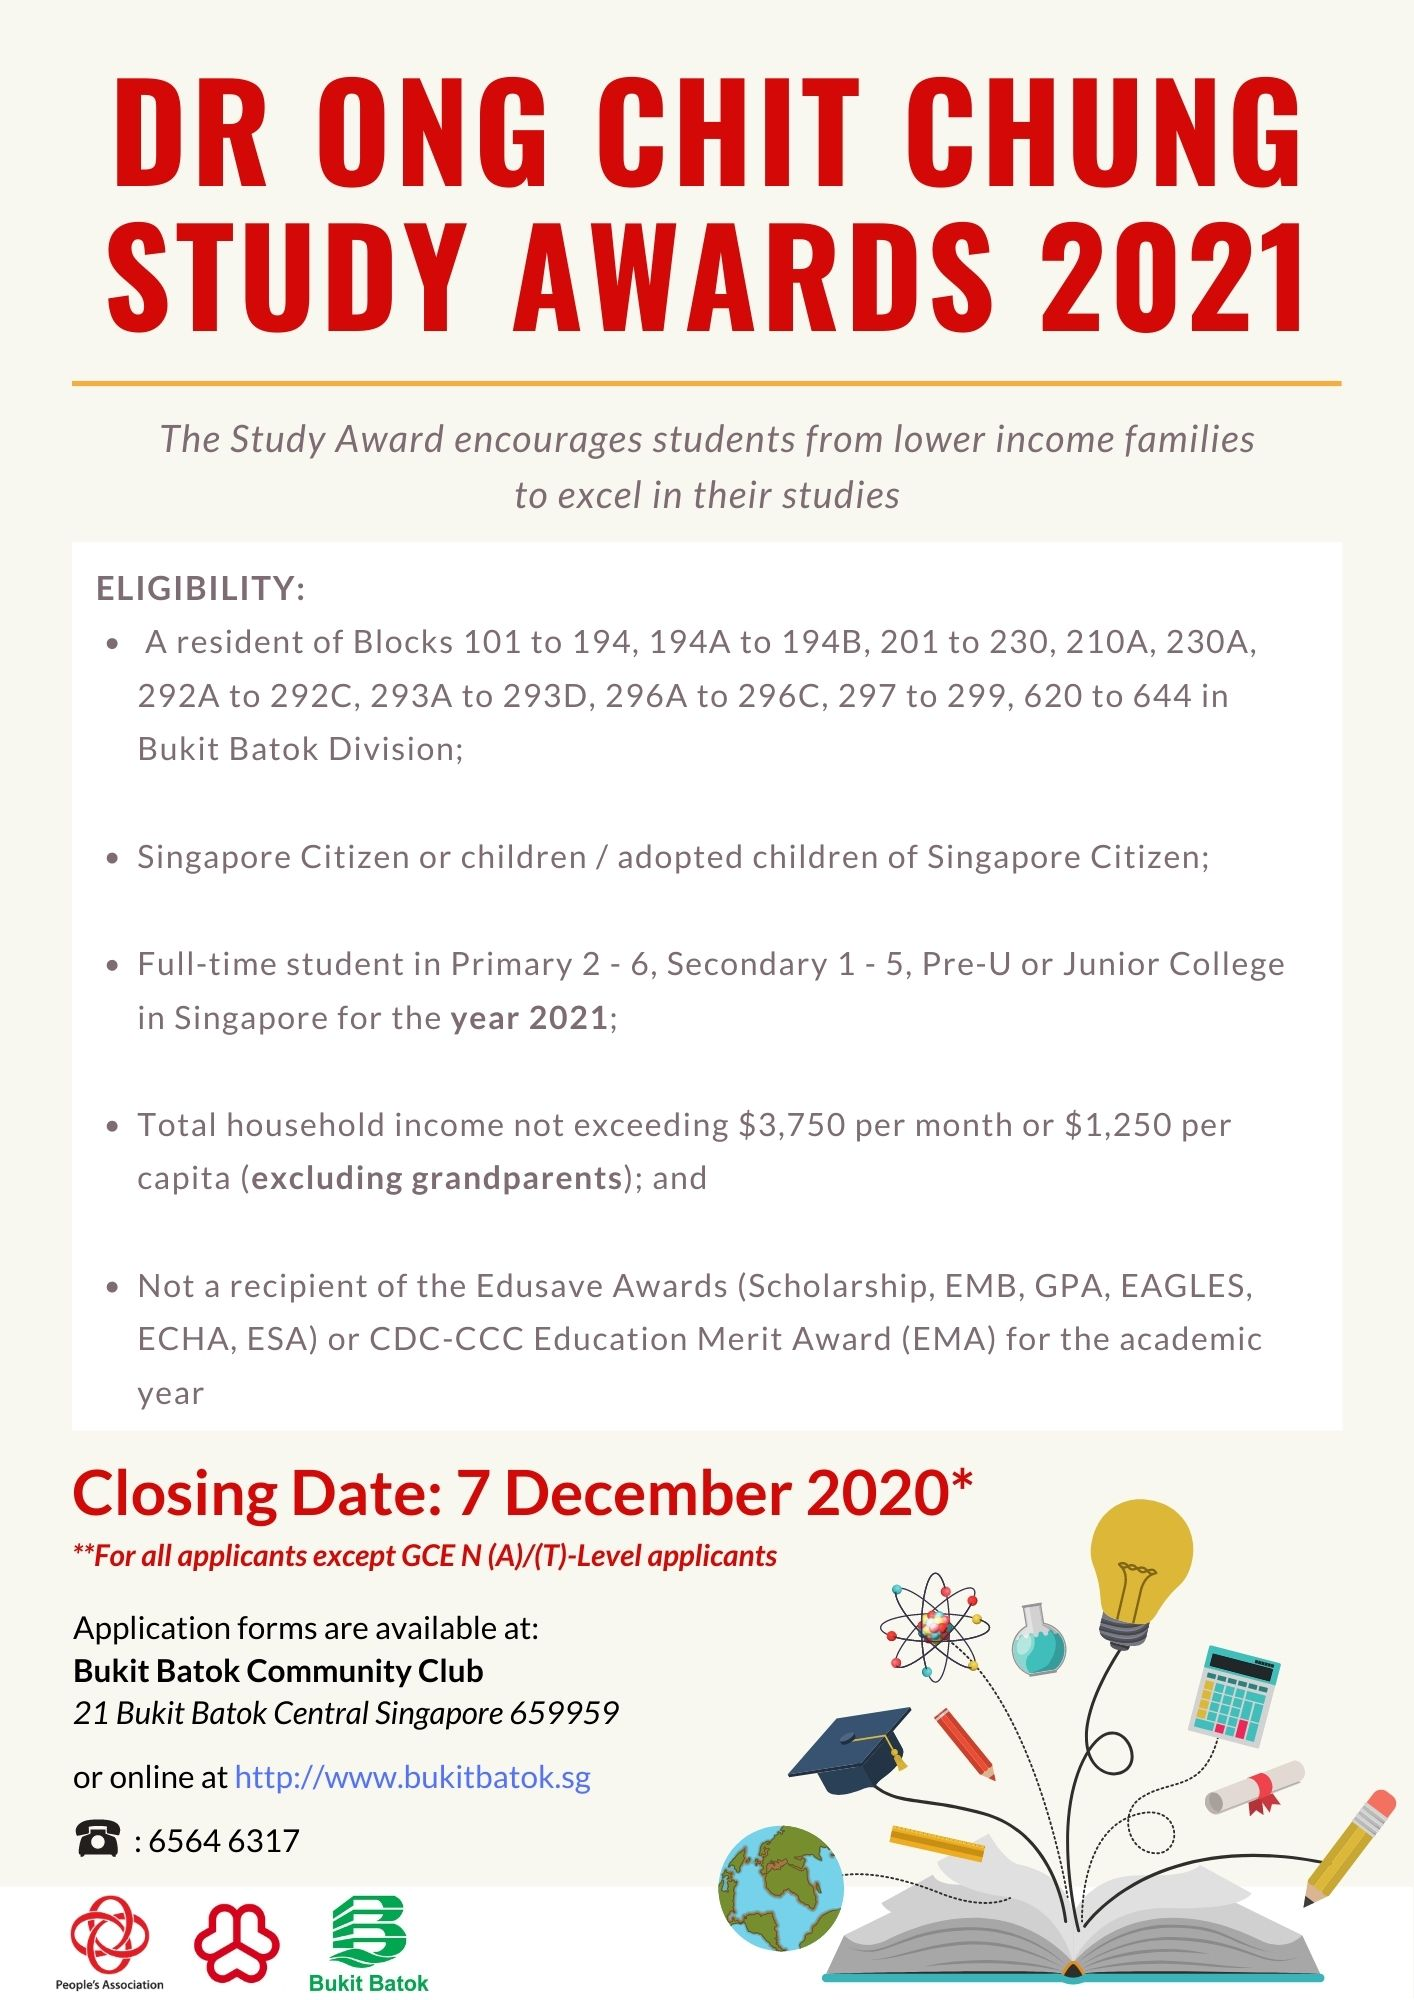 Dr. Ong Chit Chung Study Awards 2021